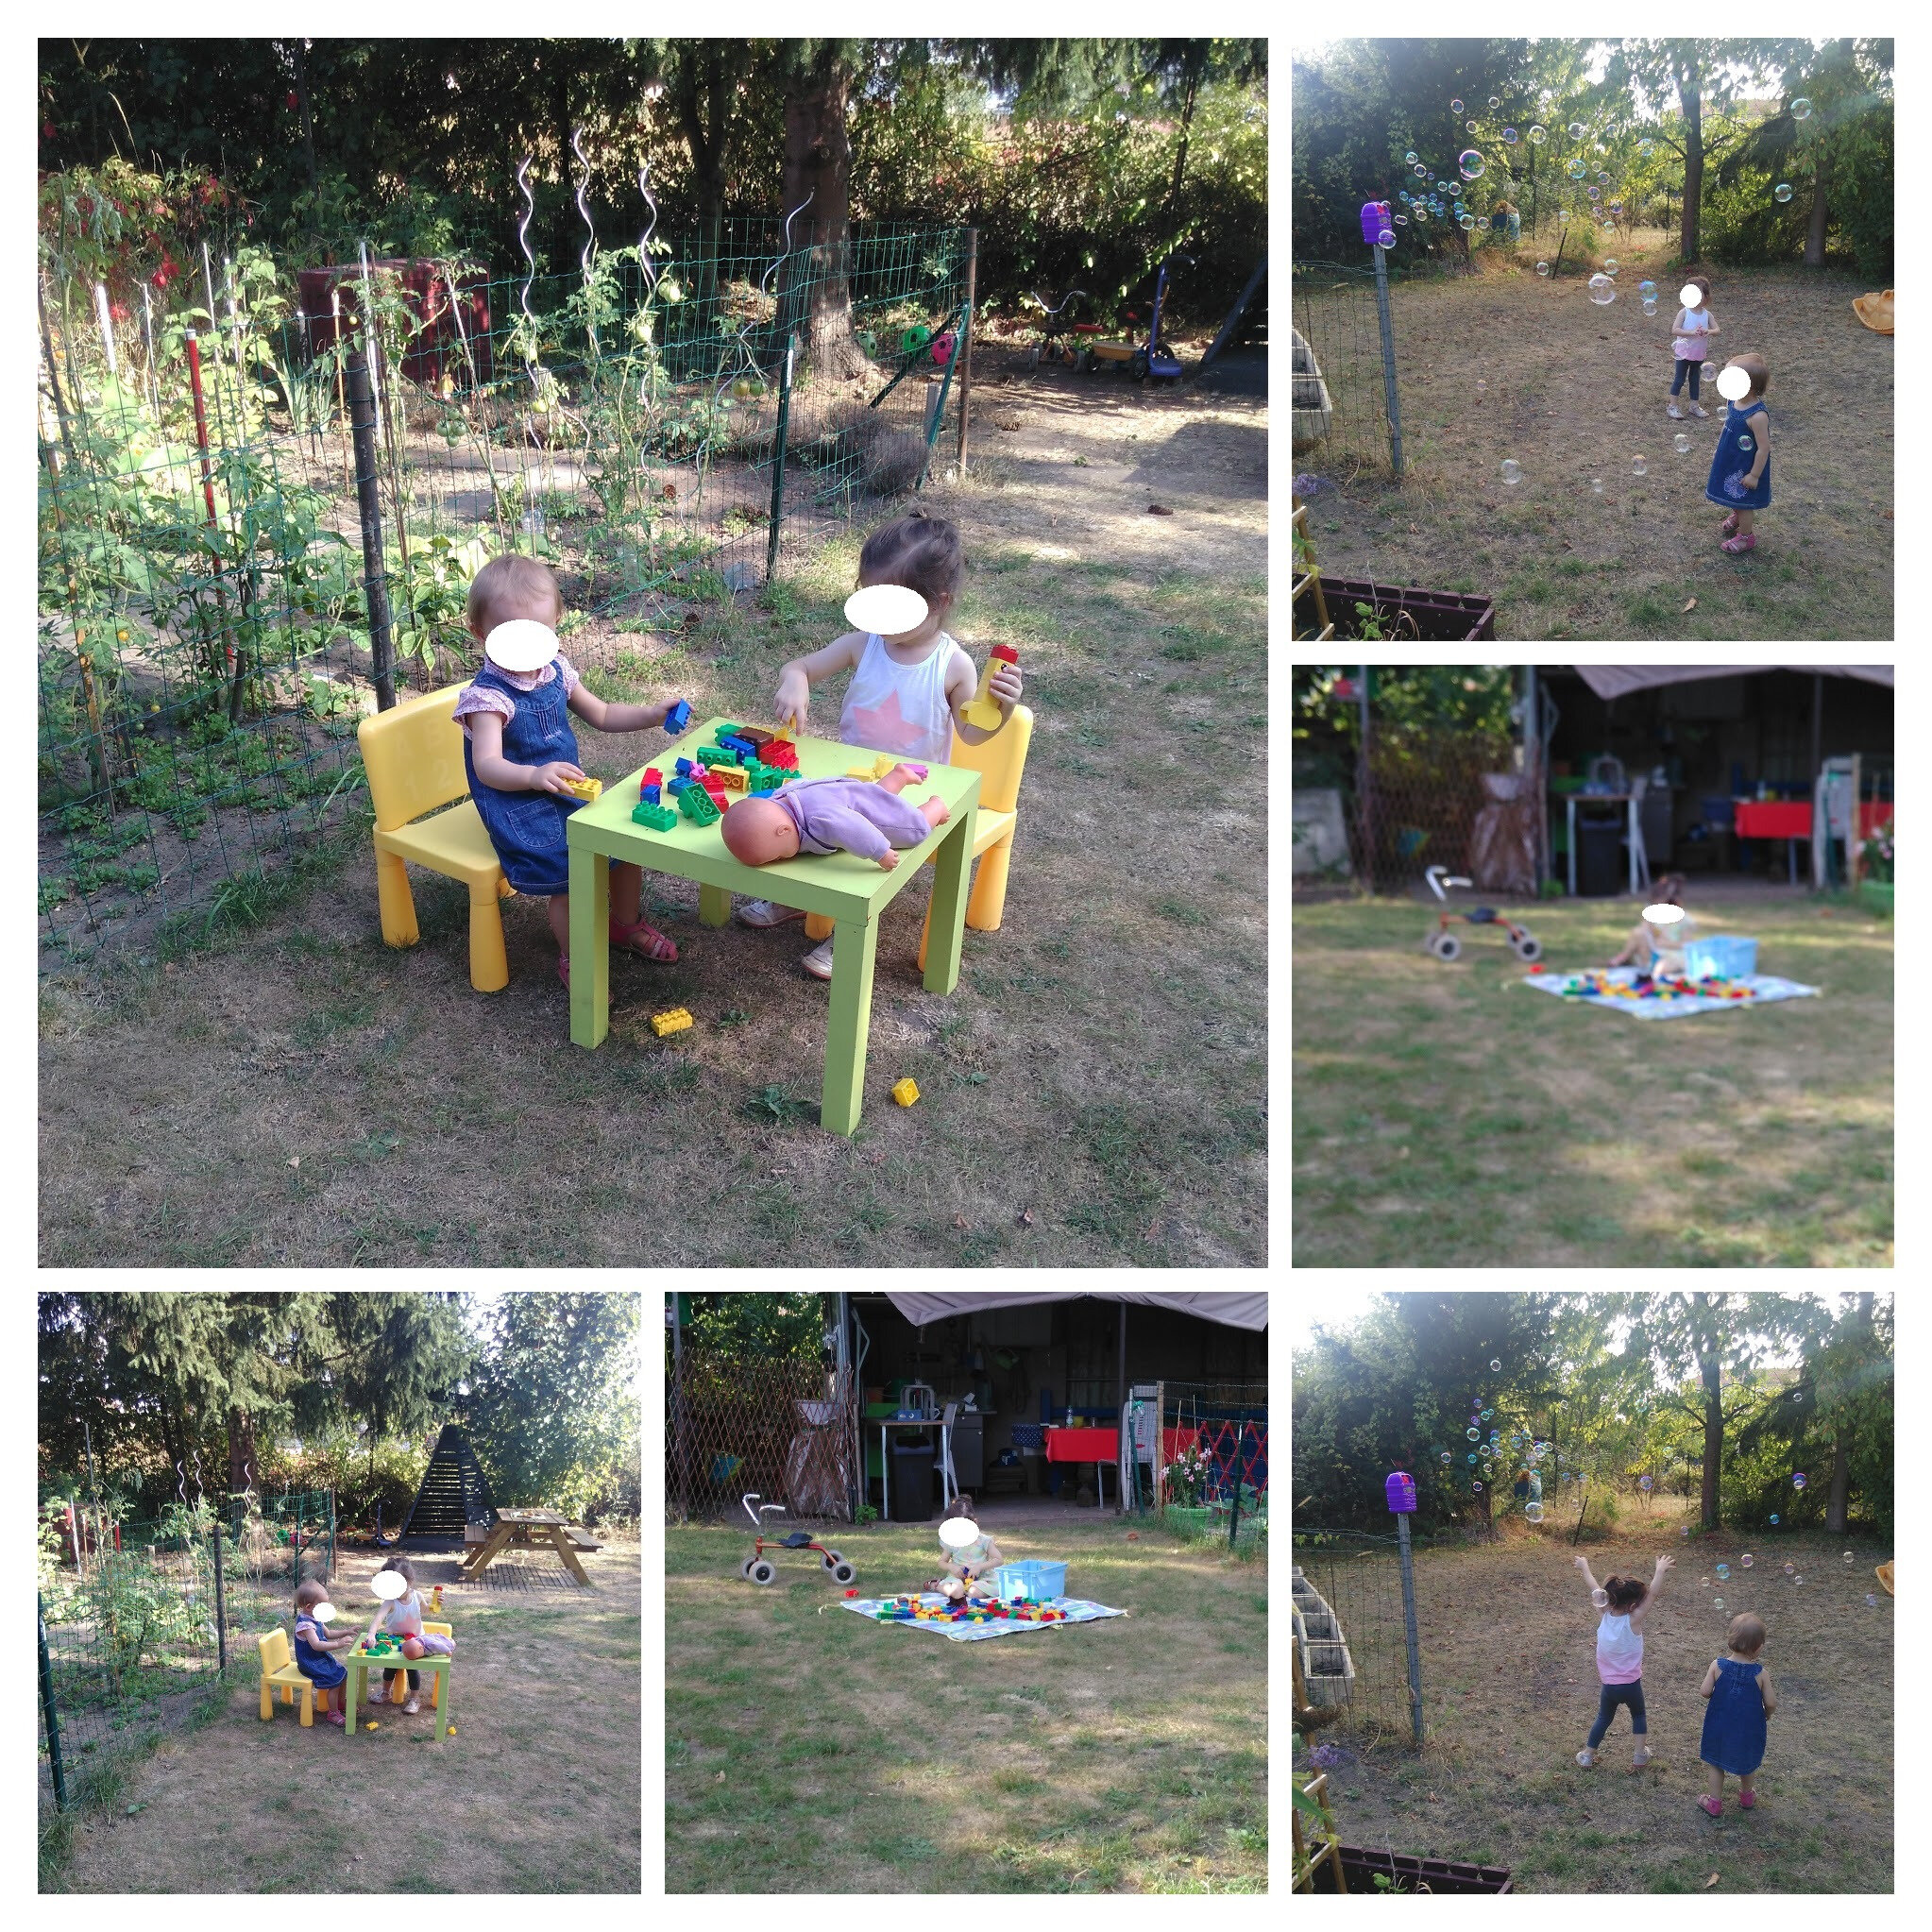 IMG_20160901_181051-COLLAGE